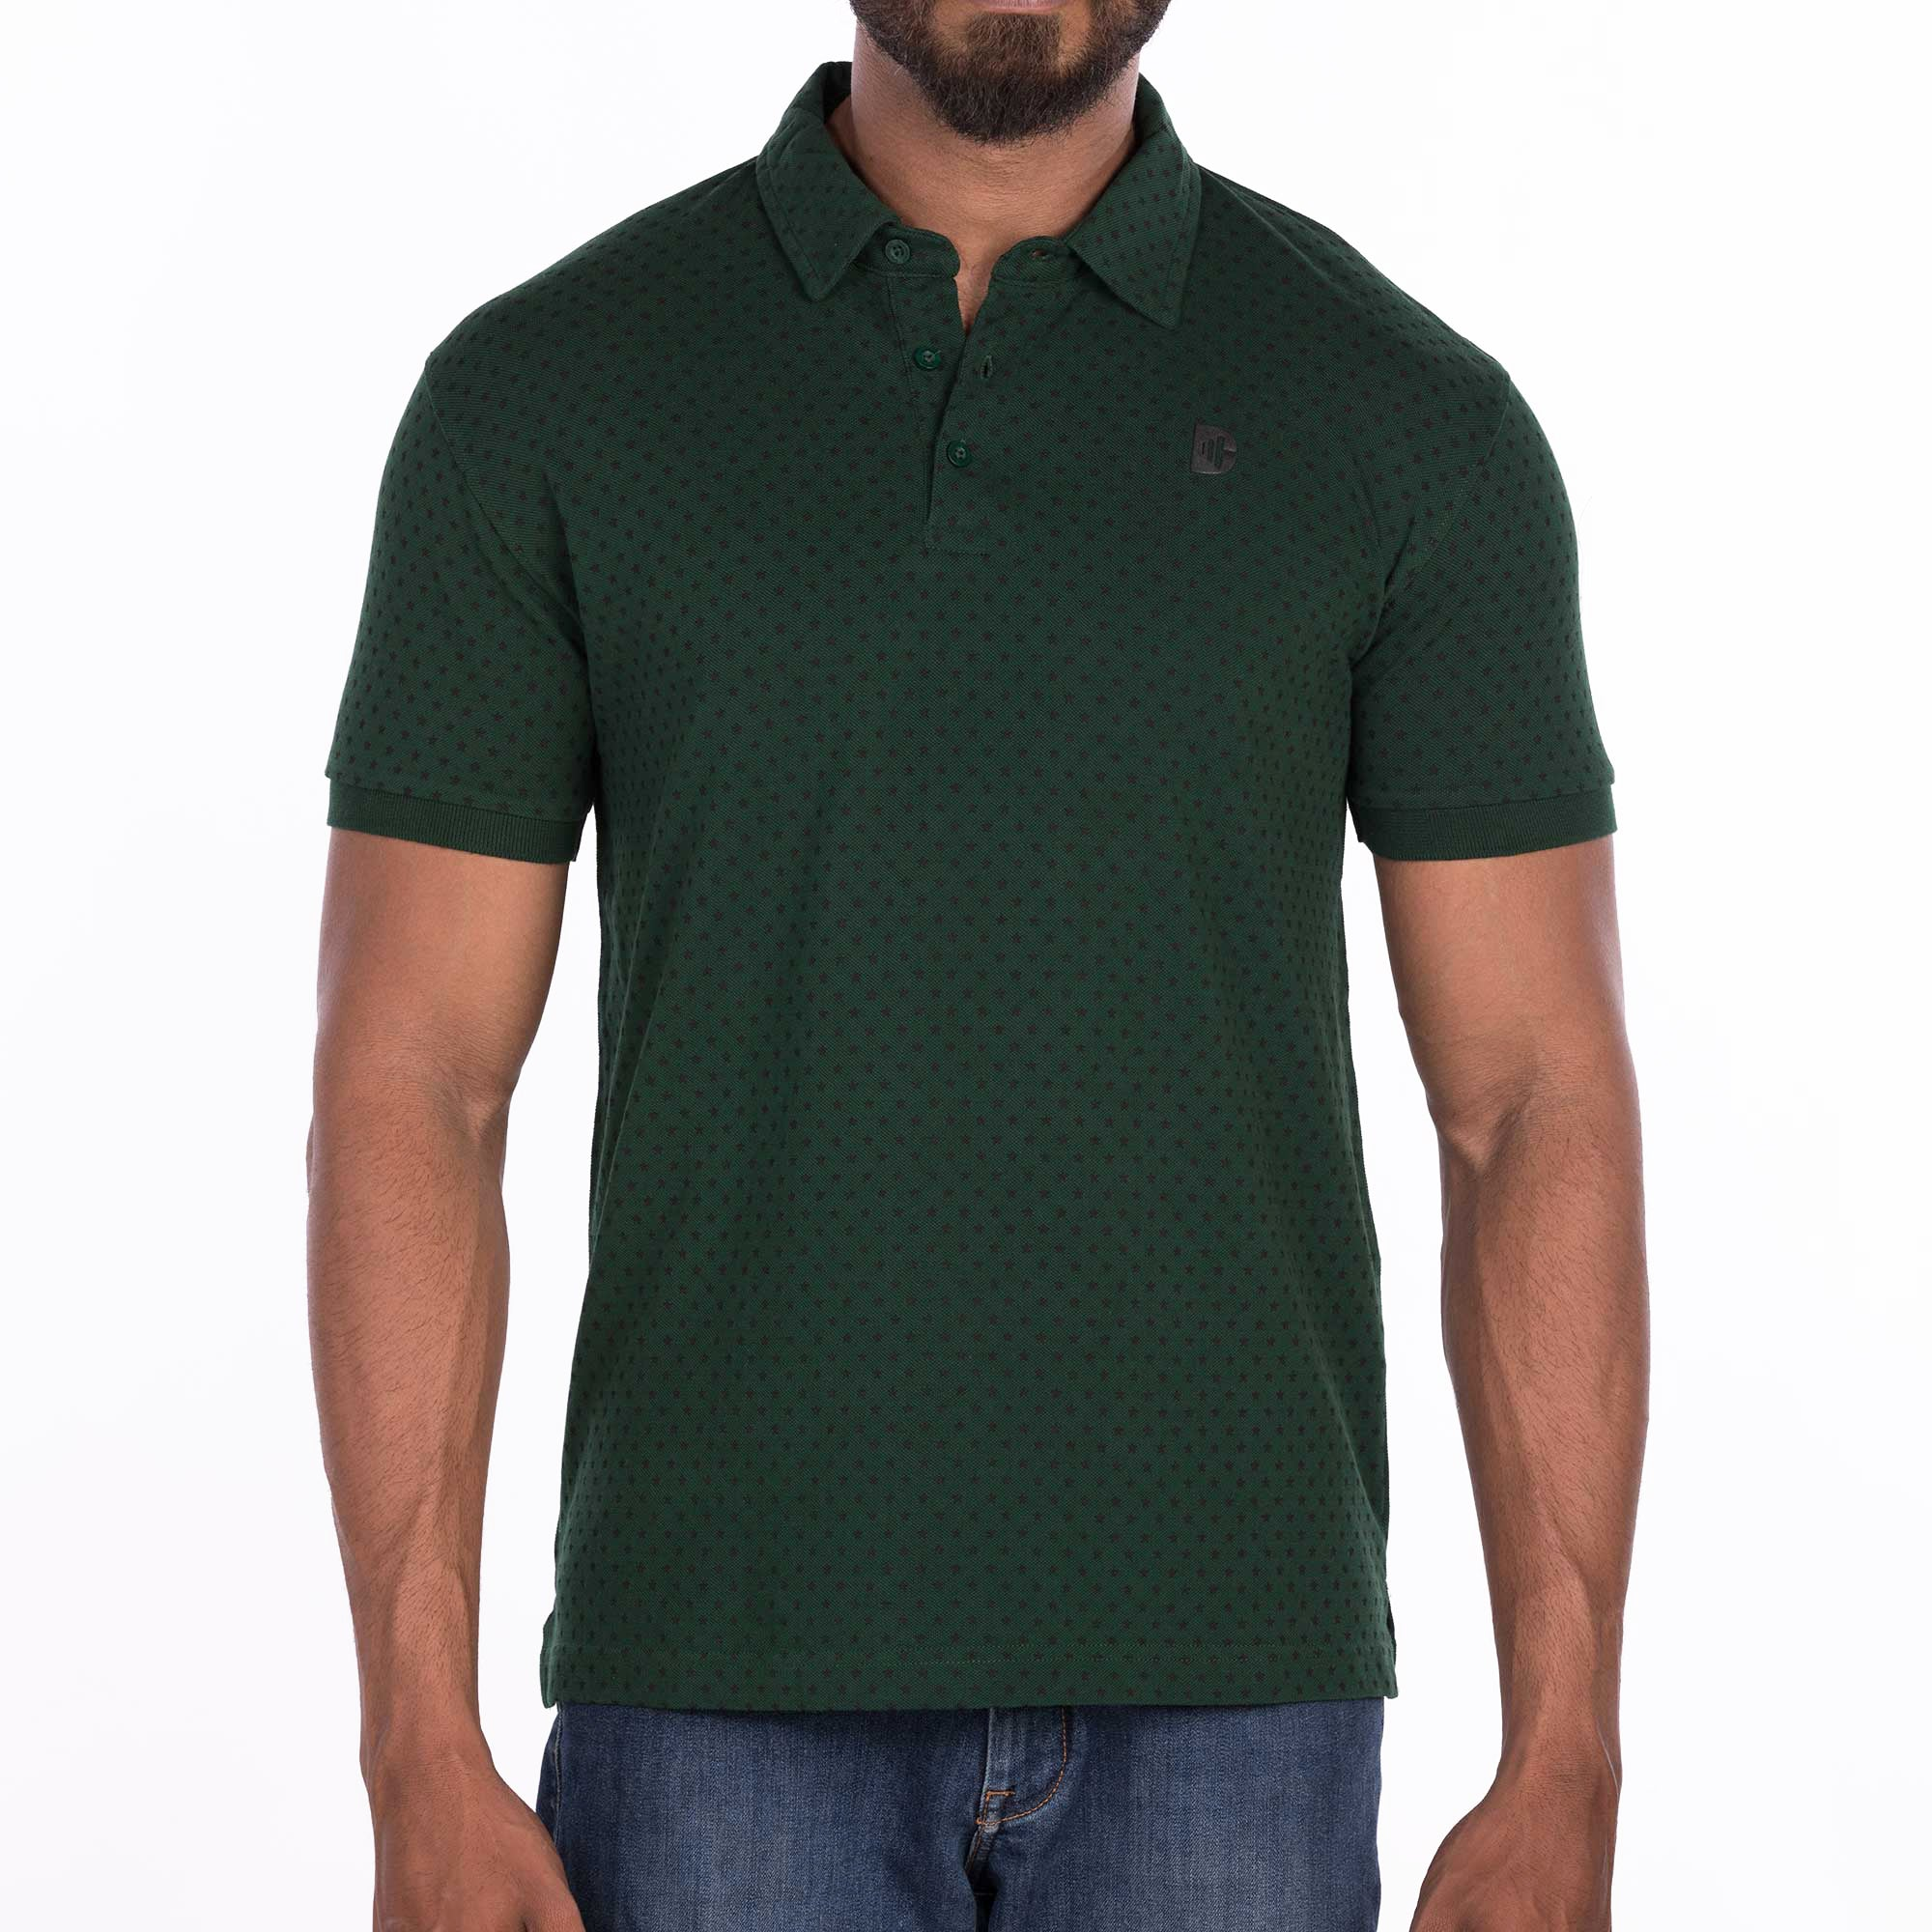 DB058 Polo Tee Shirt- Bottle Green